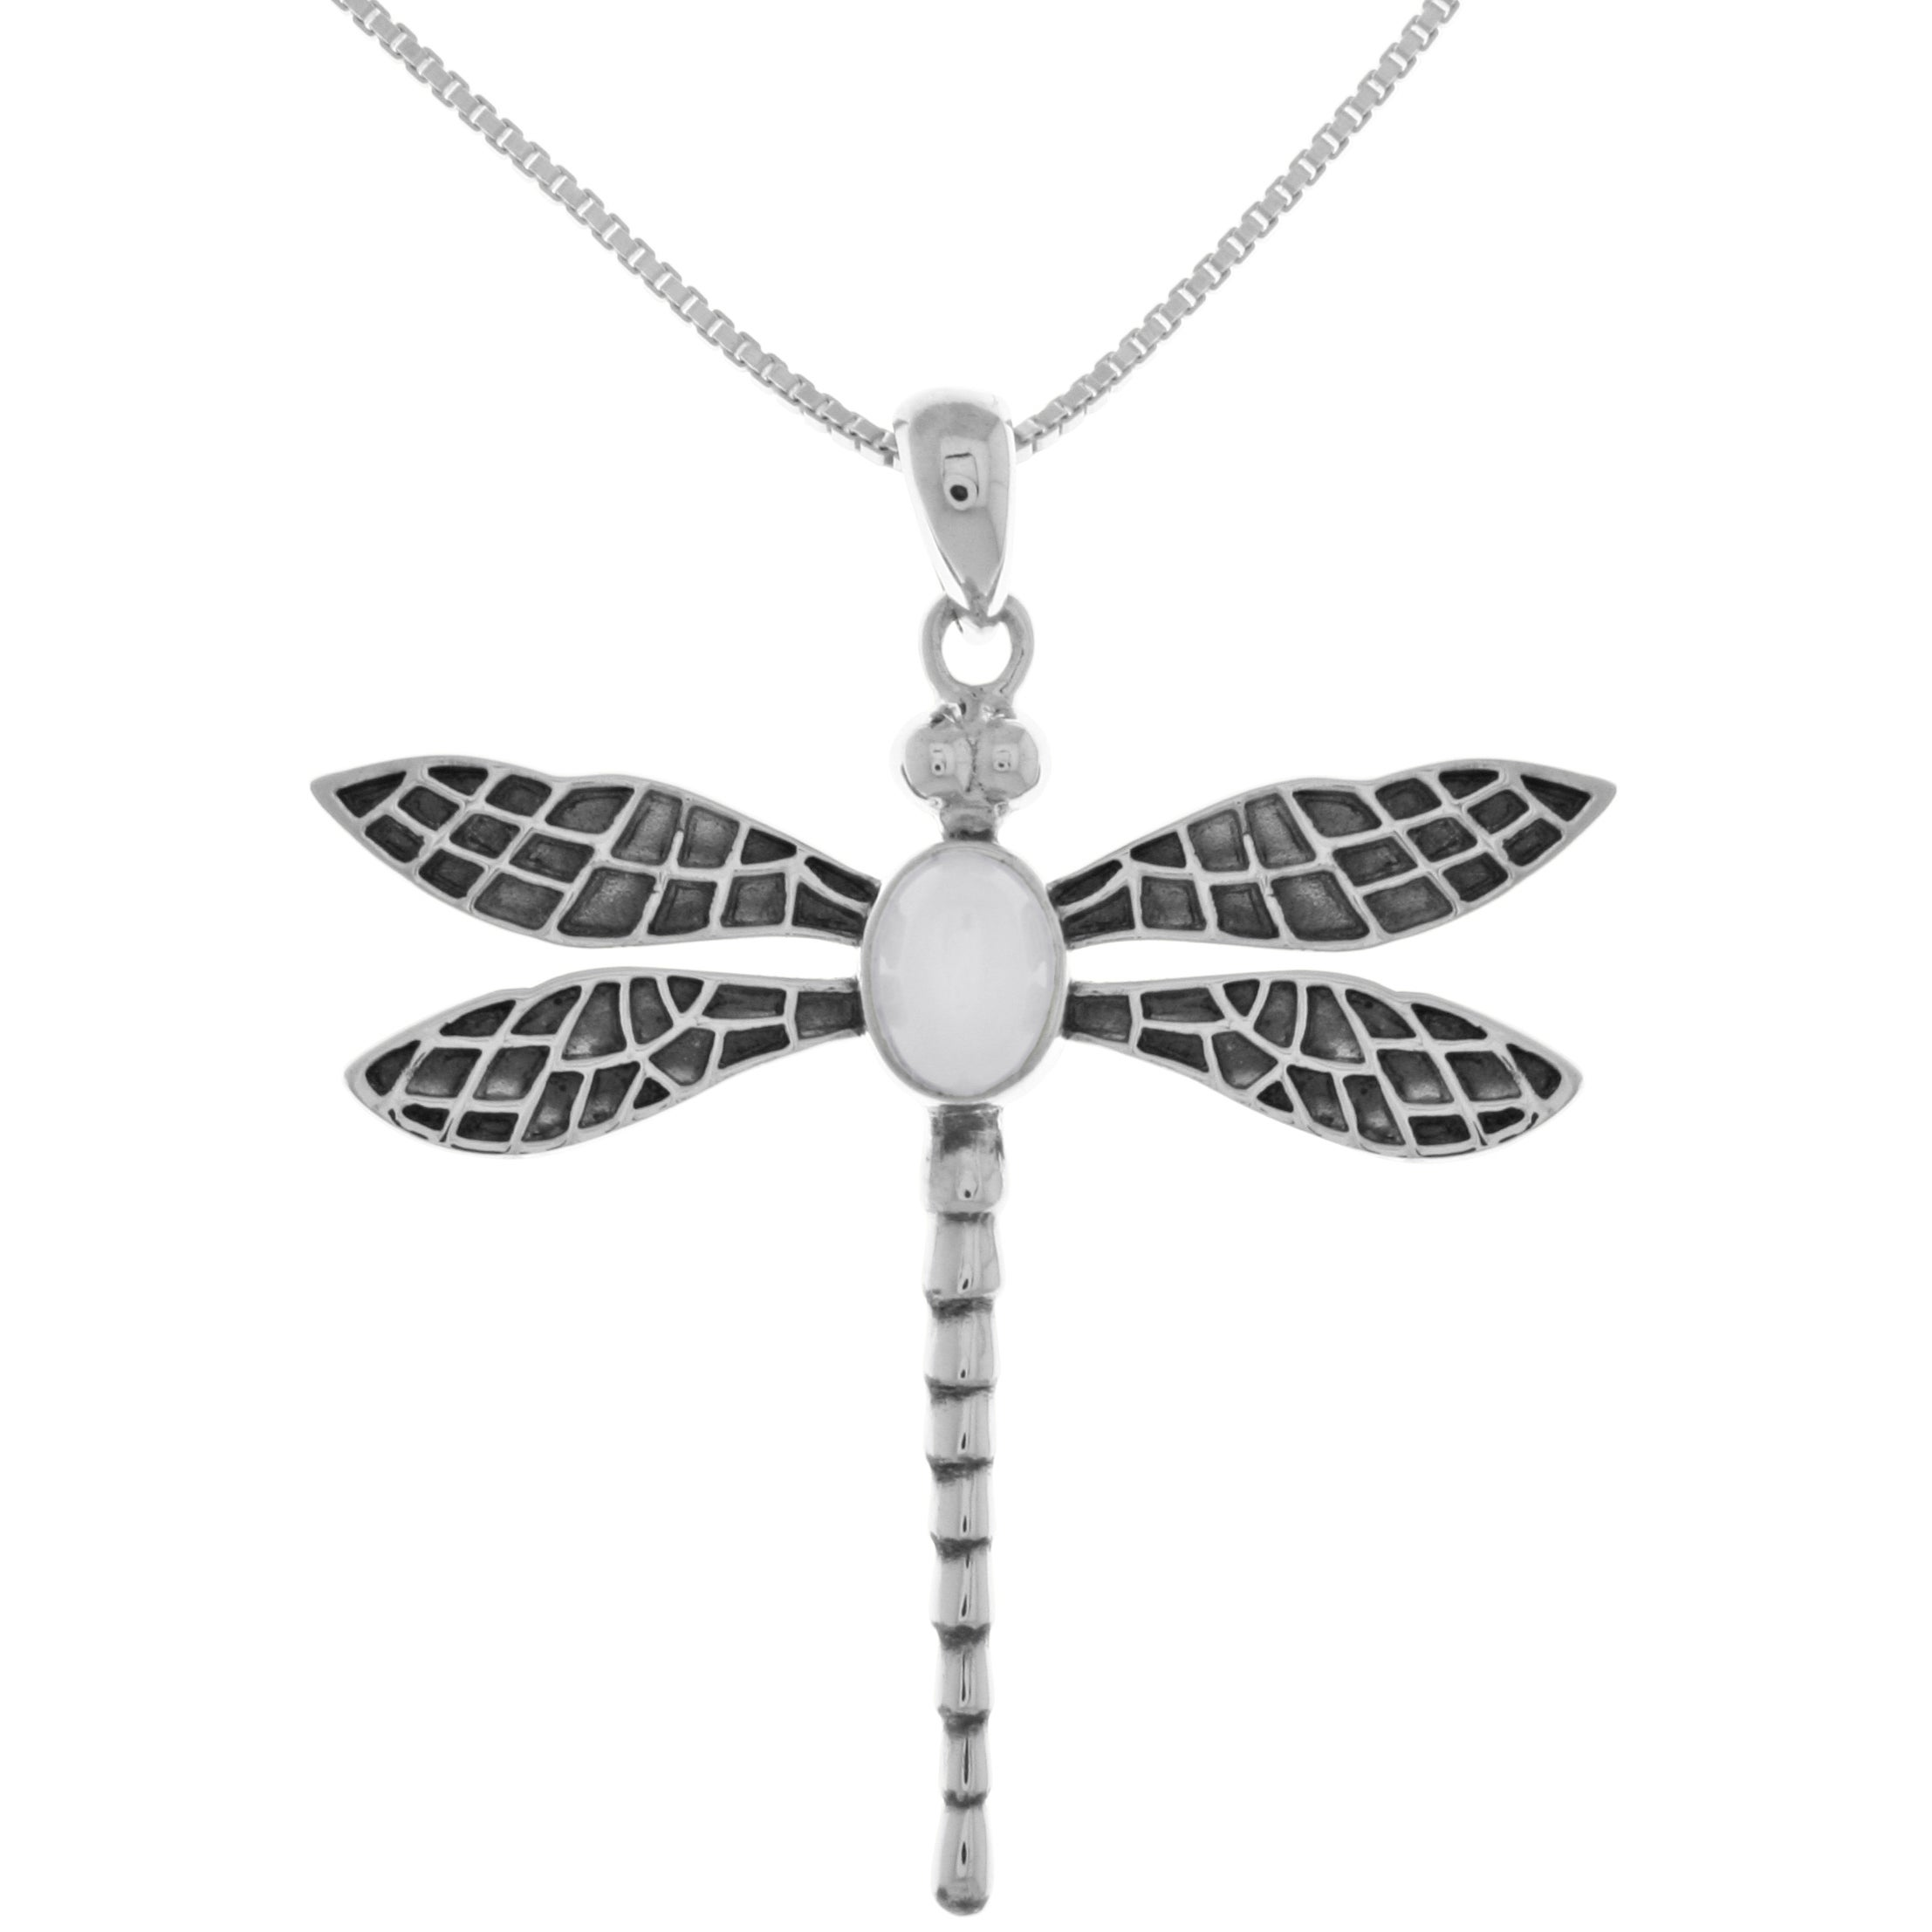 necklace image hover zoom over to dragonfly